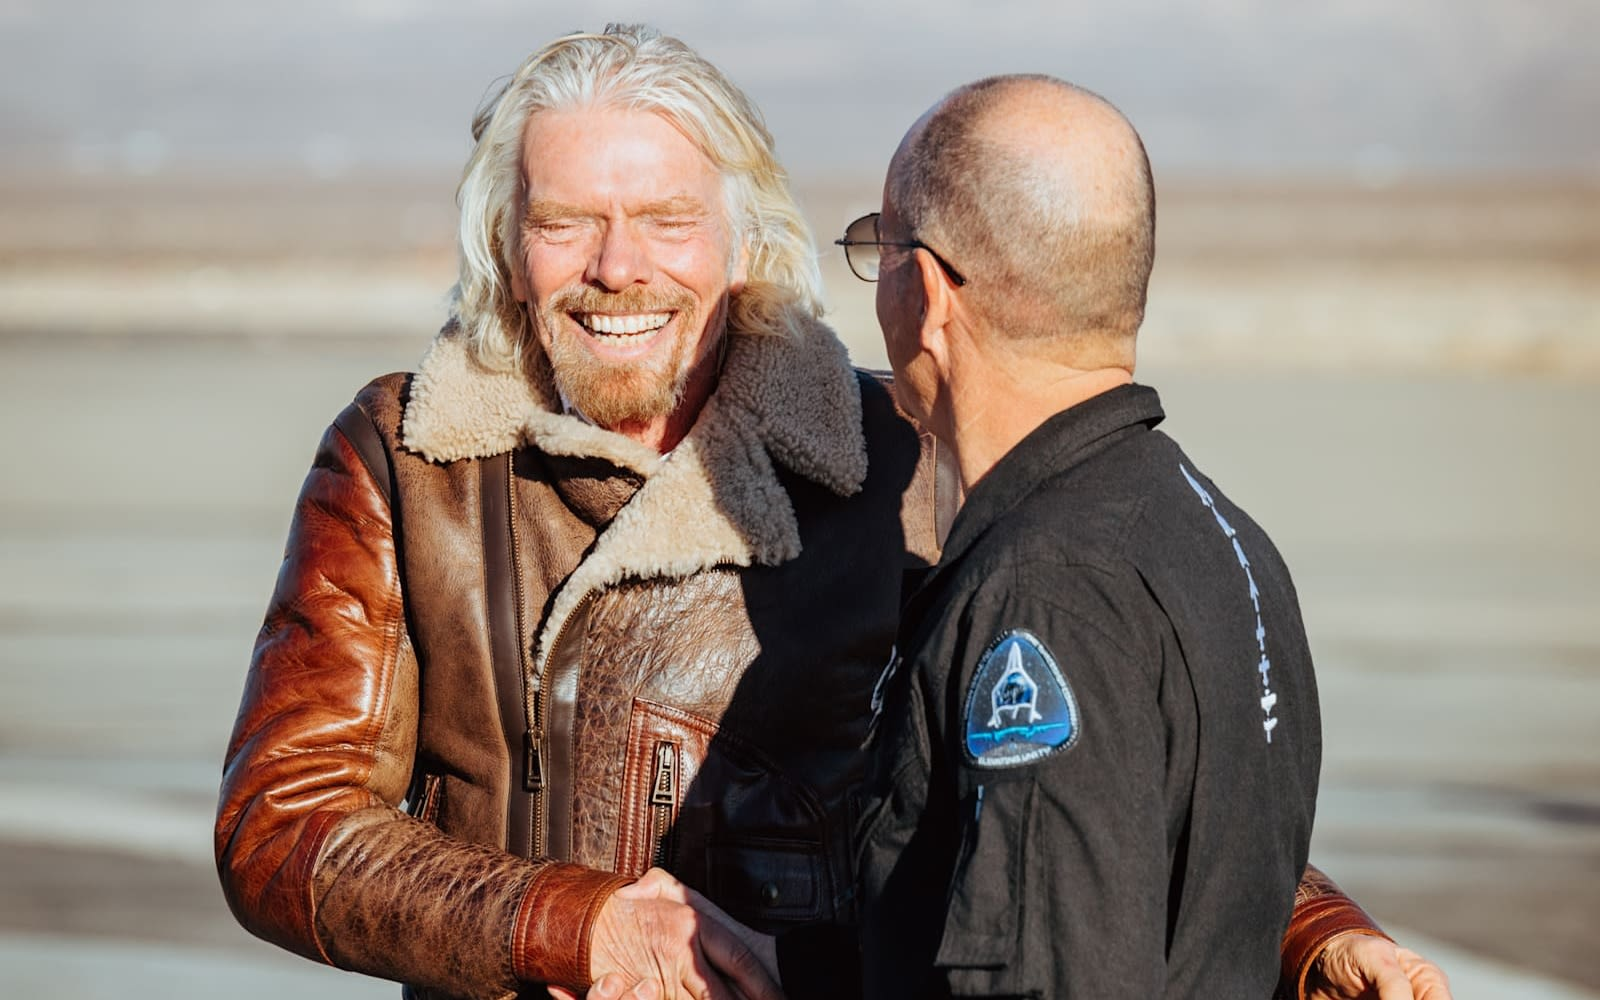 Richard Branson shakes hands with Virgin Galactic pilot Rick 'CJ' Sturckow after Virgin Galactic's first spaceflight